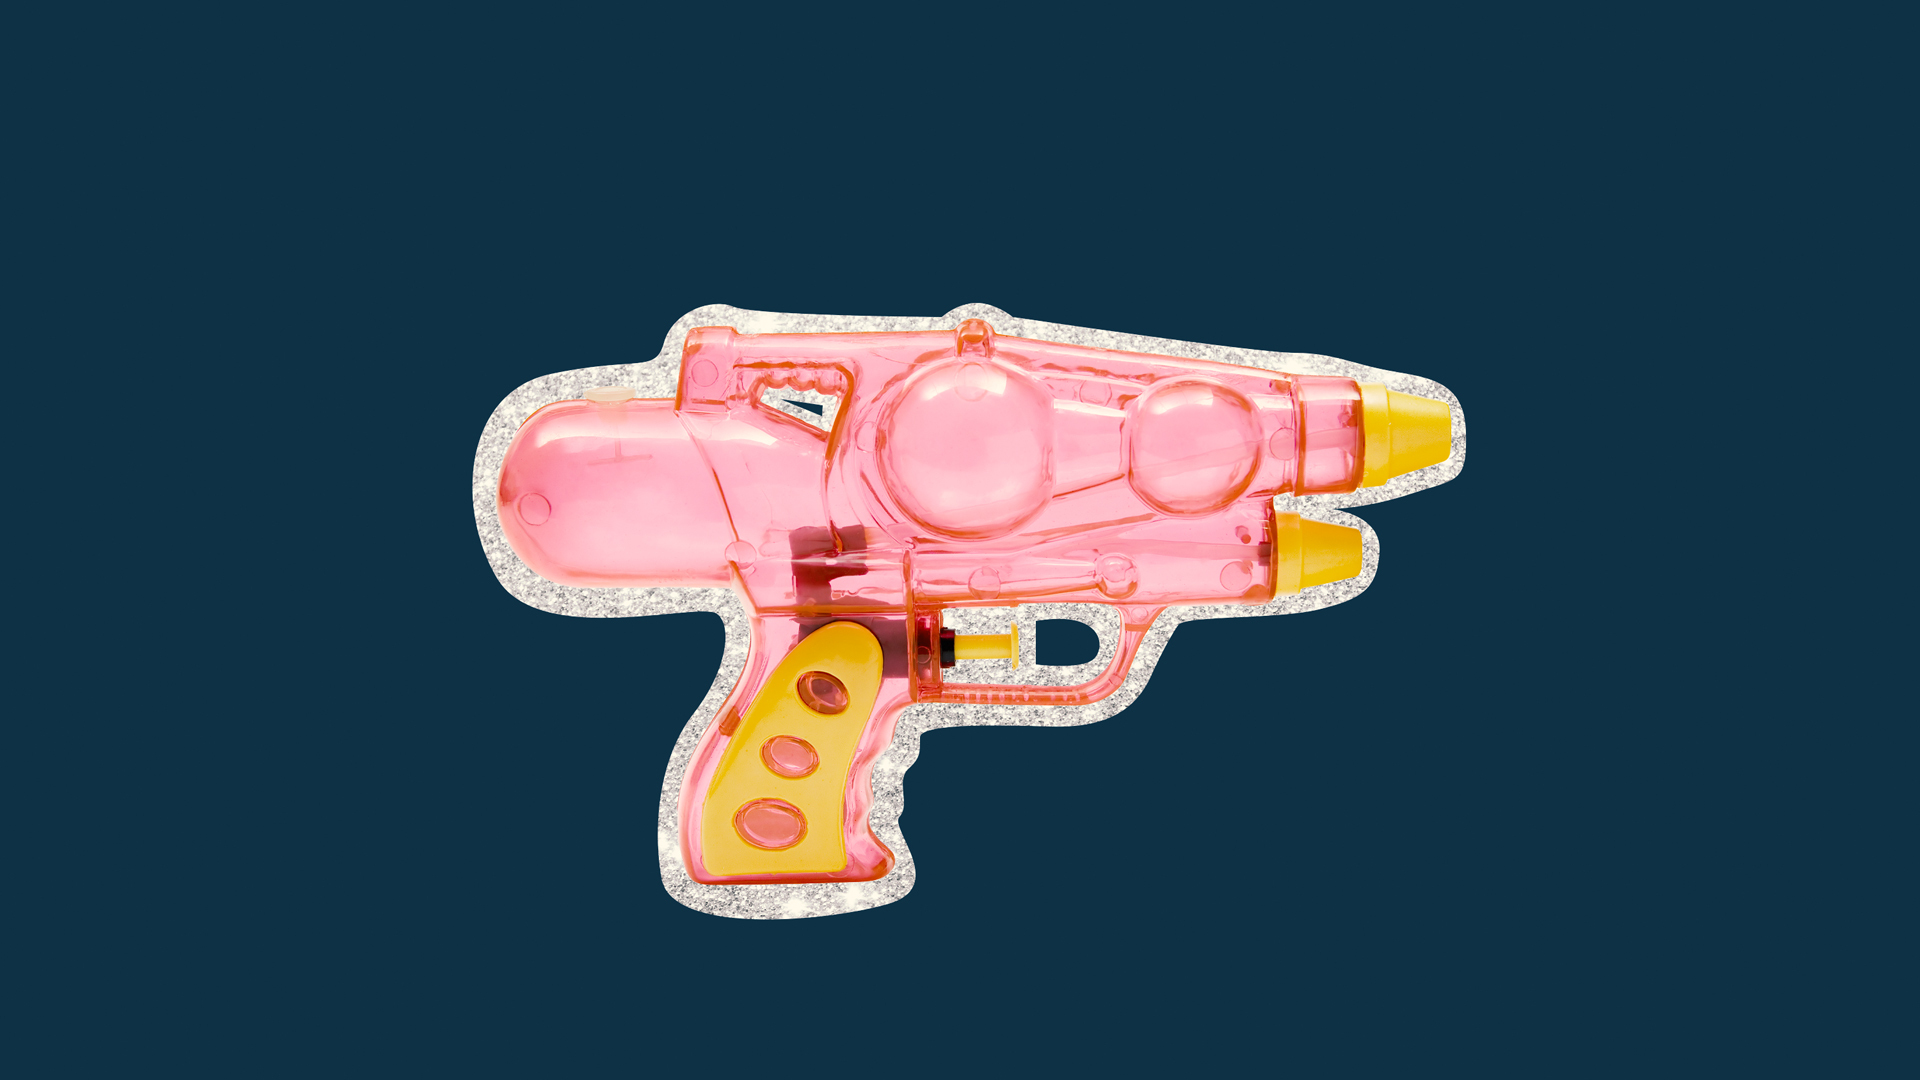 Is it High Time We Banned Toy Guns Entirely?